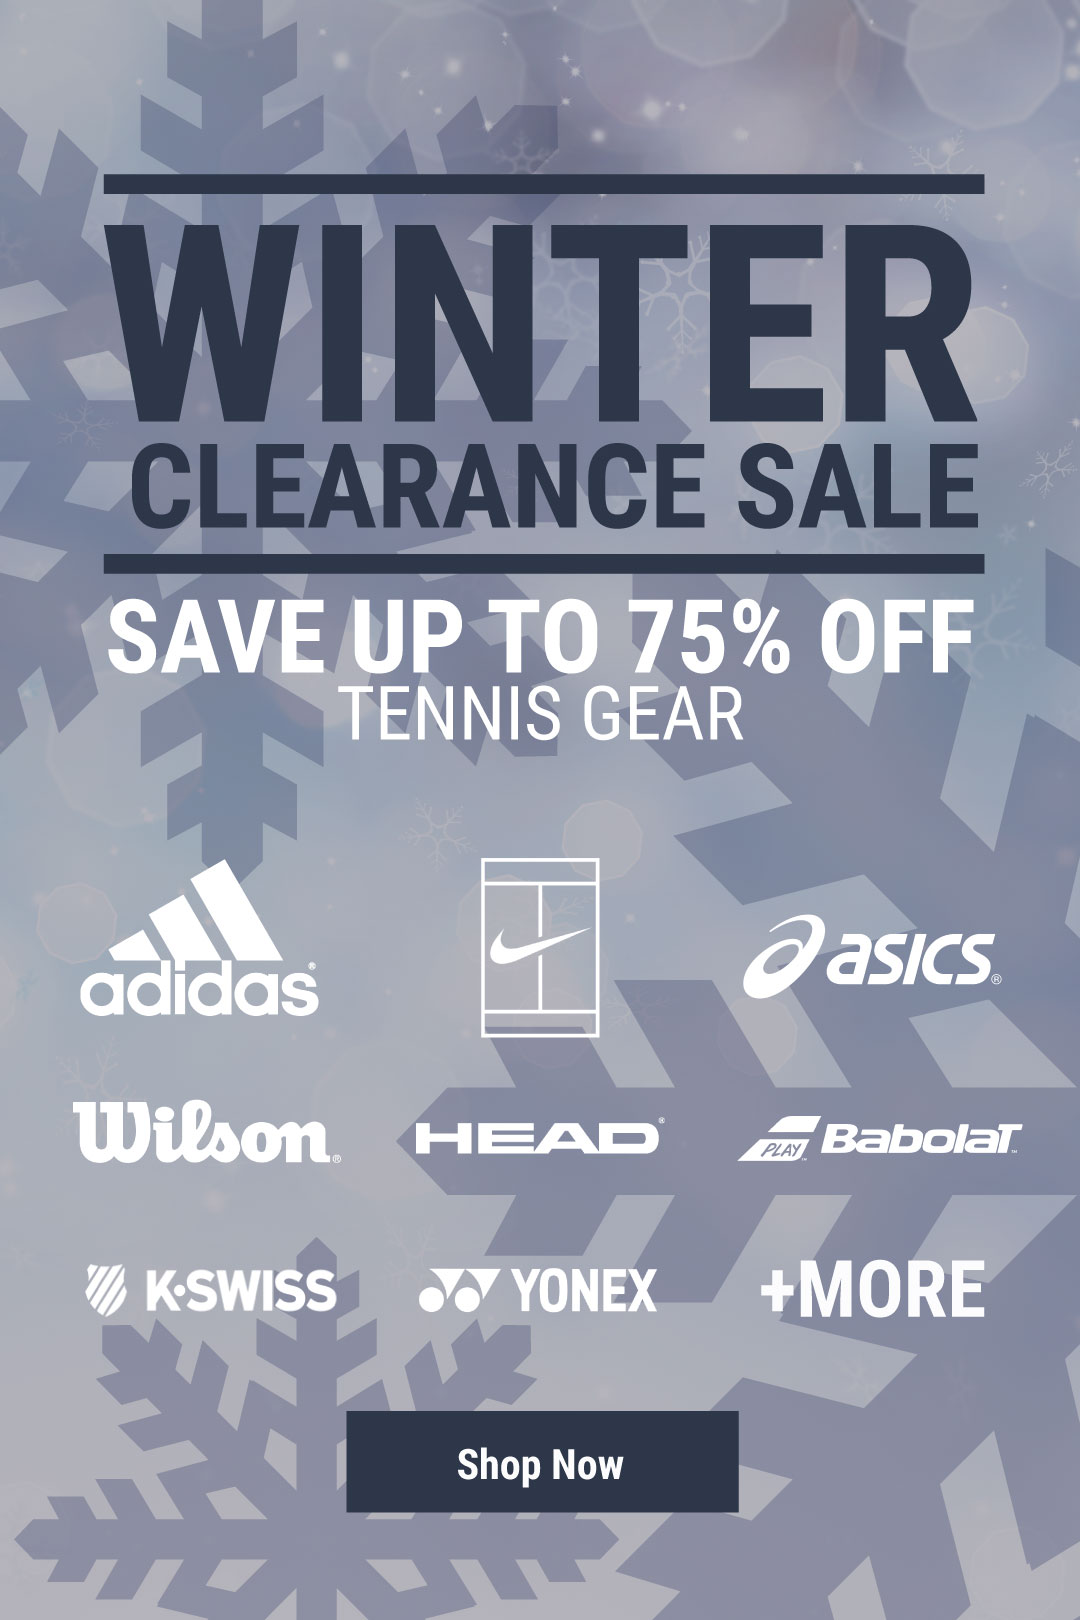 Winter Clearance Tennis Deals - Shop racquets, strings, shoes apparel and more